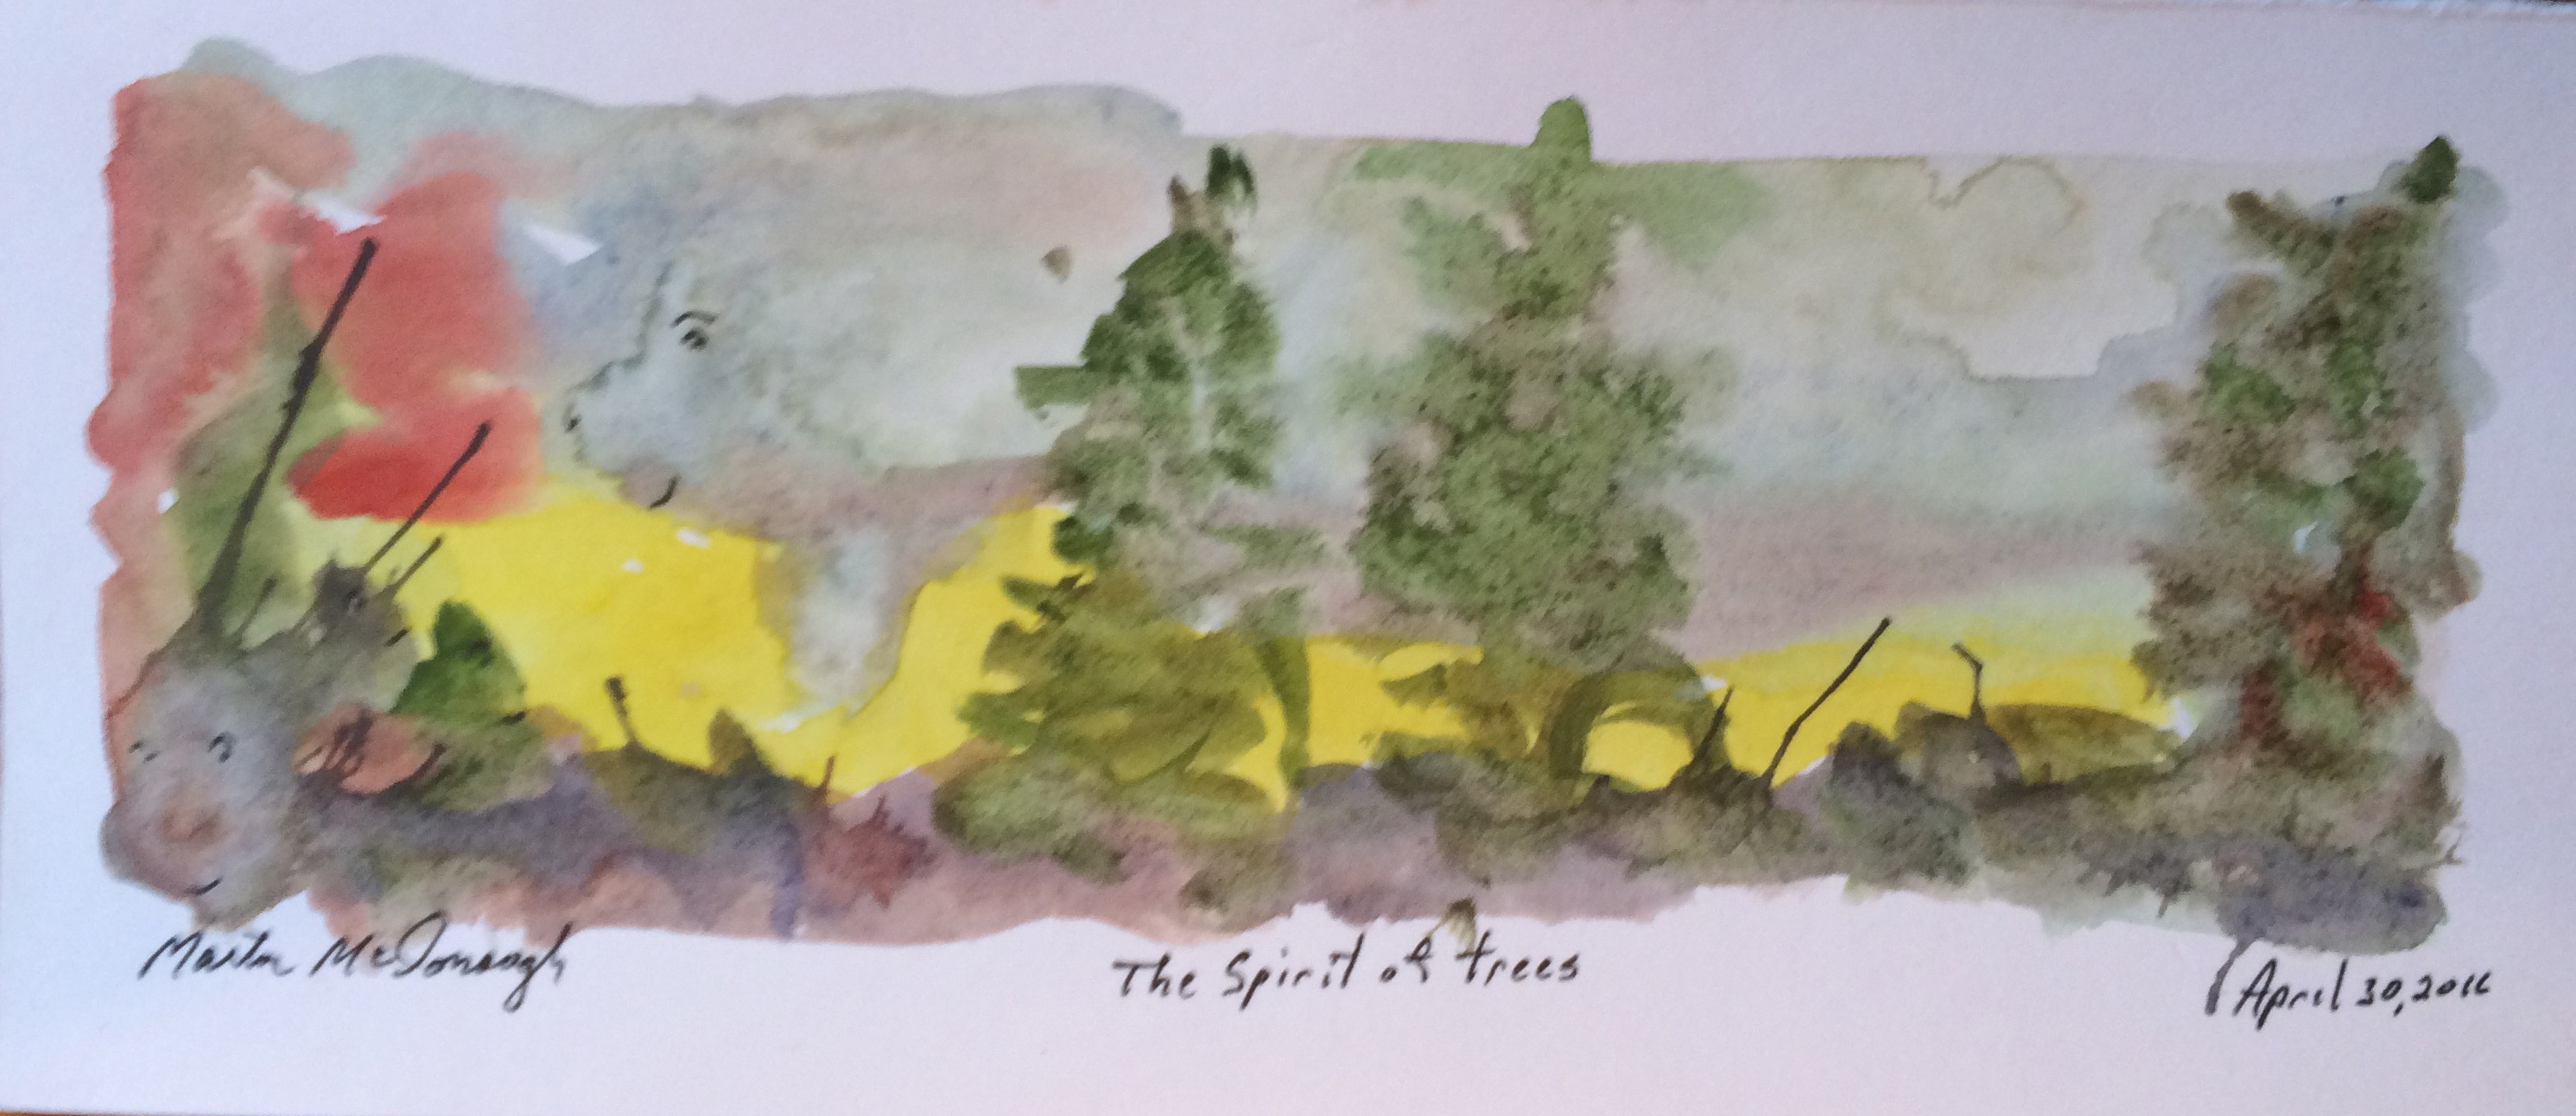 the_spirit_of_trees_web